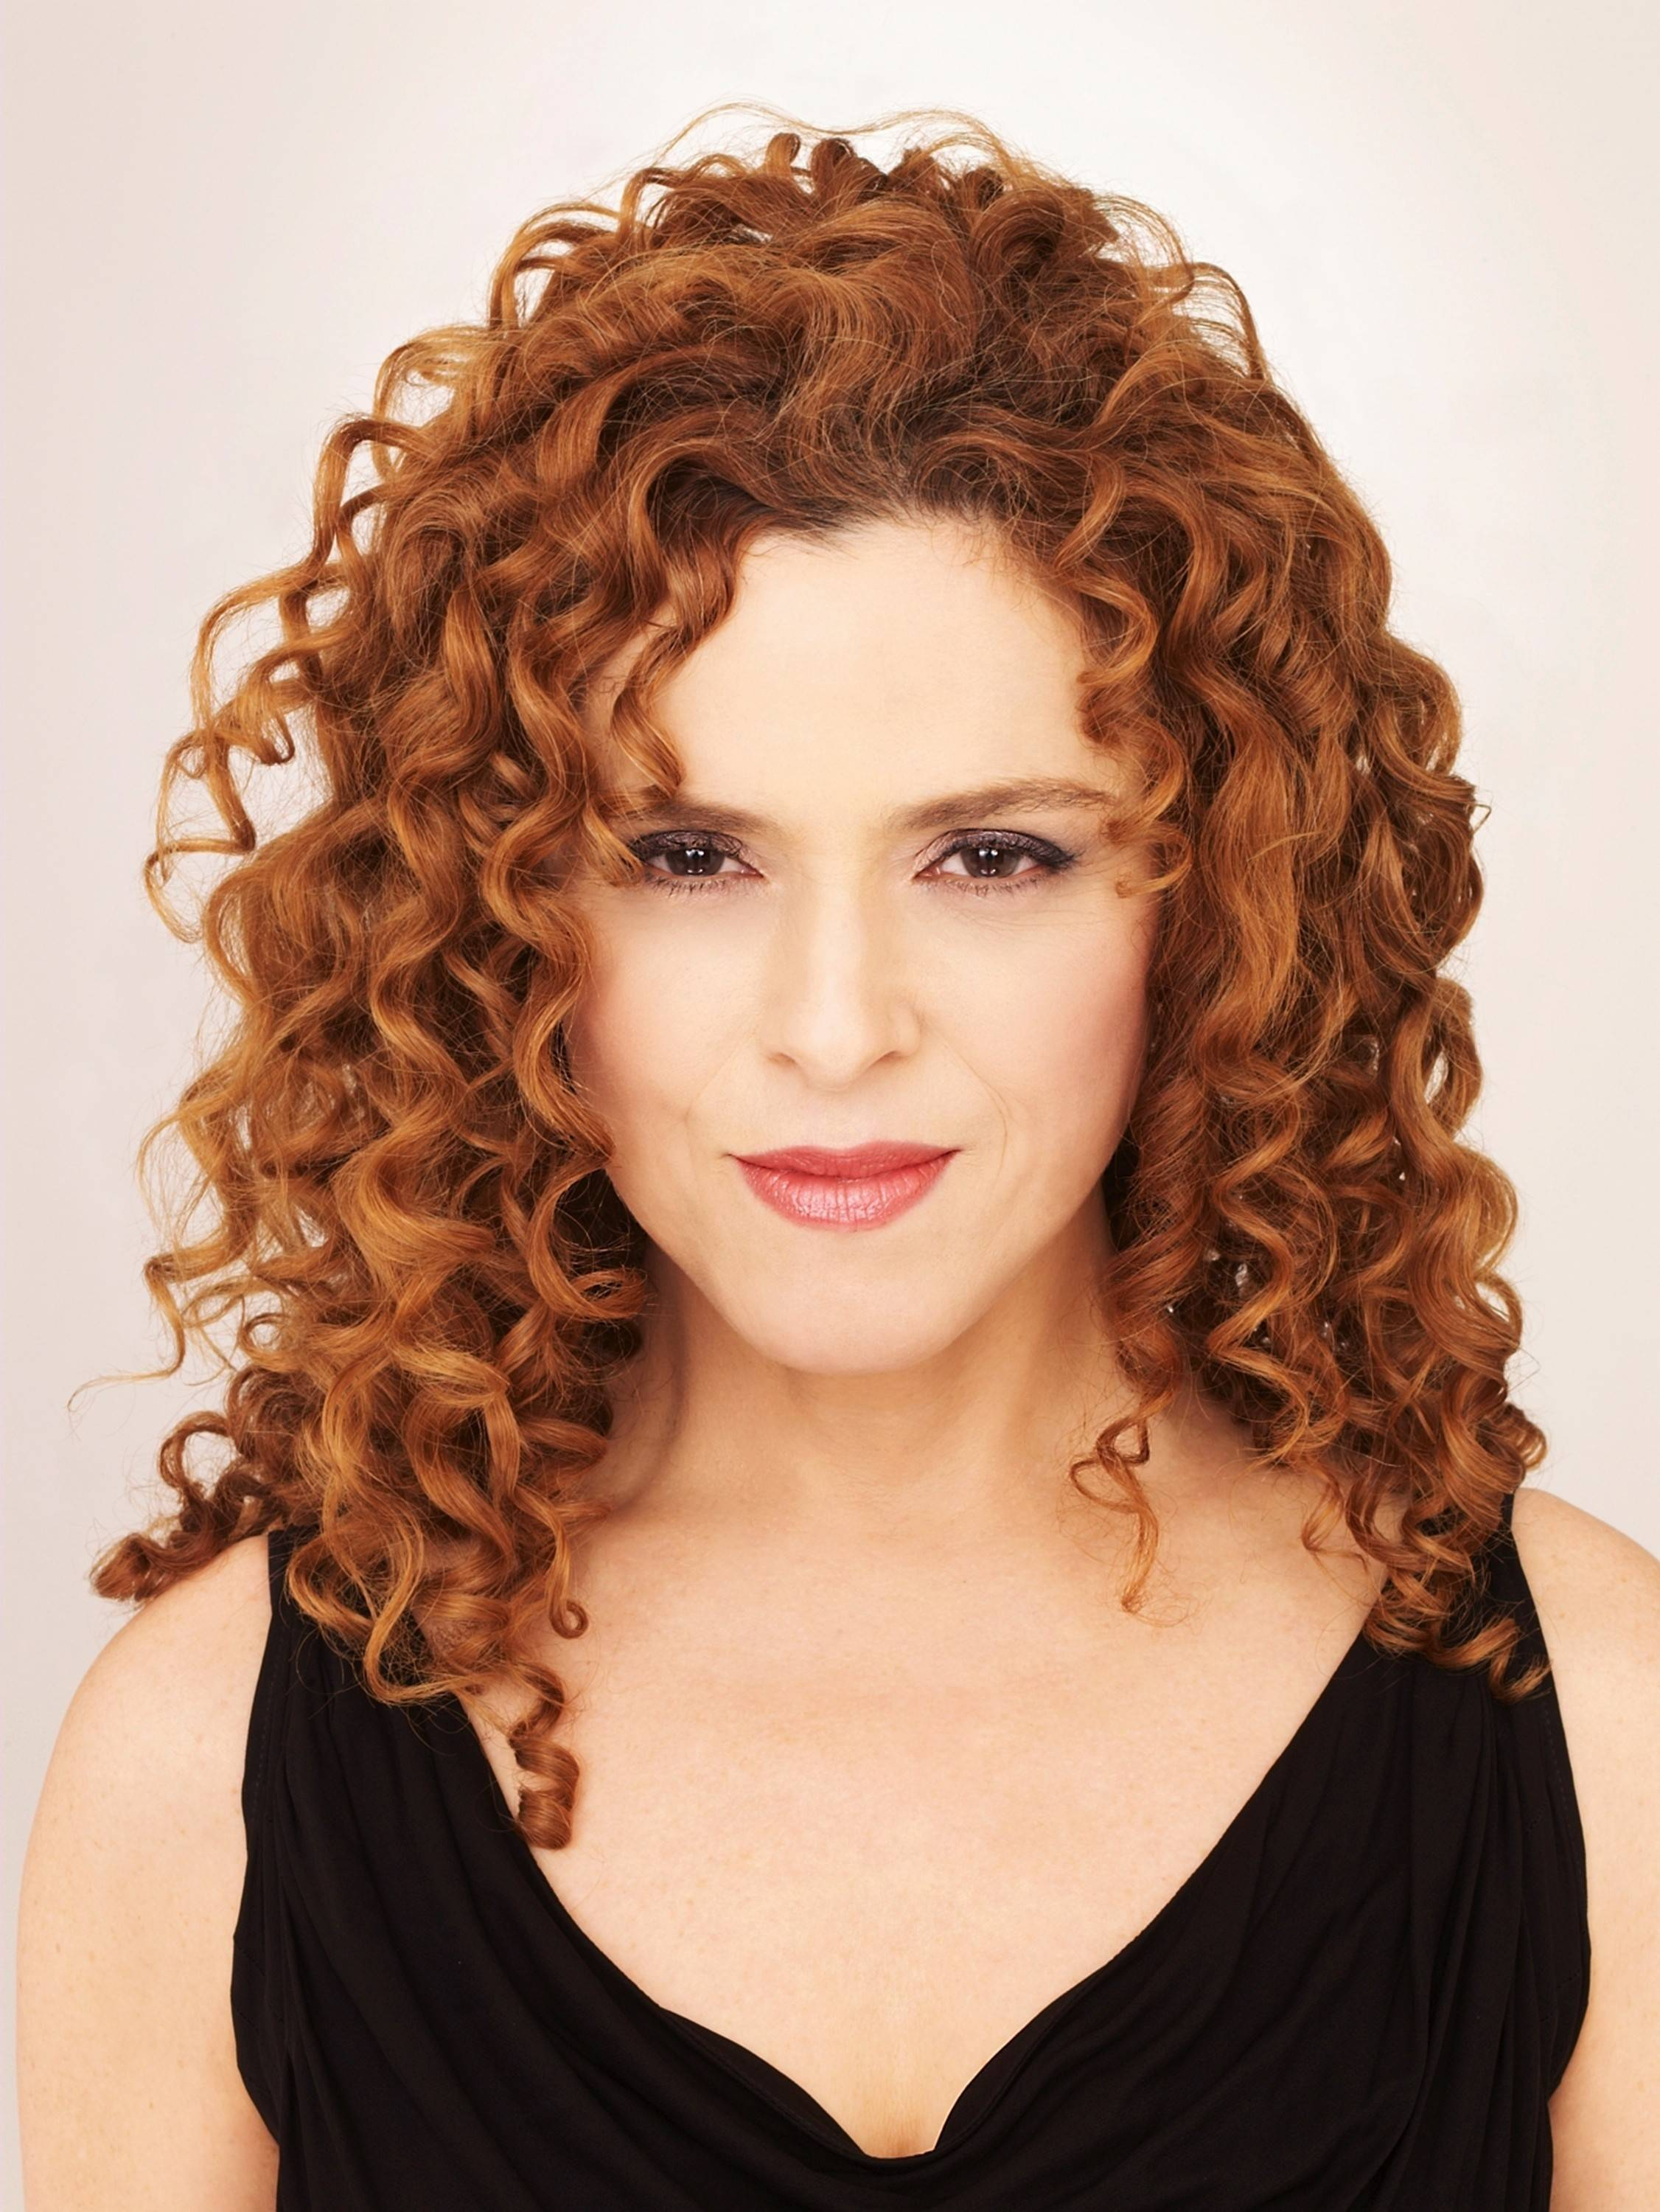 Courtesy of Andrew EcclesTony Award-winning Broadway star Bernadette Peters is set to perform at the Genesee Theatre in Waukegan on Friday, Feb. 14.